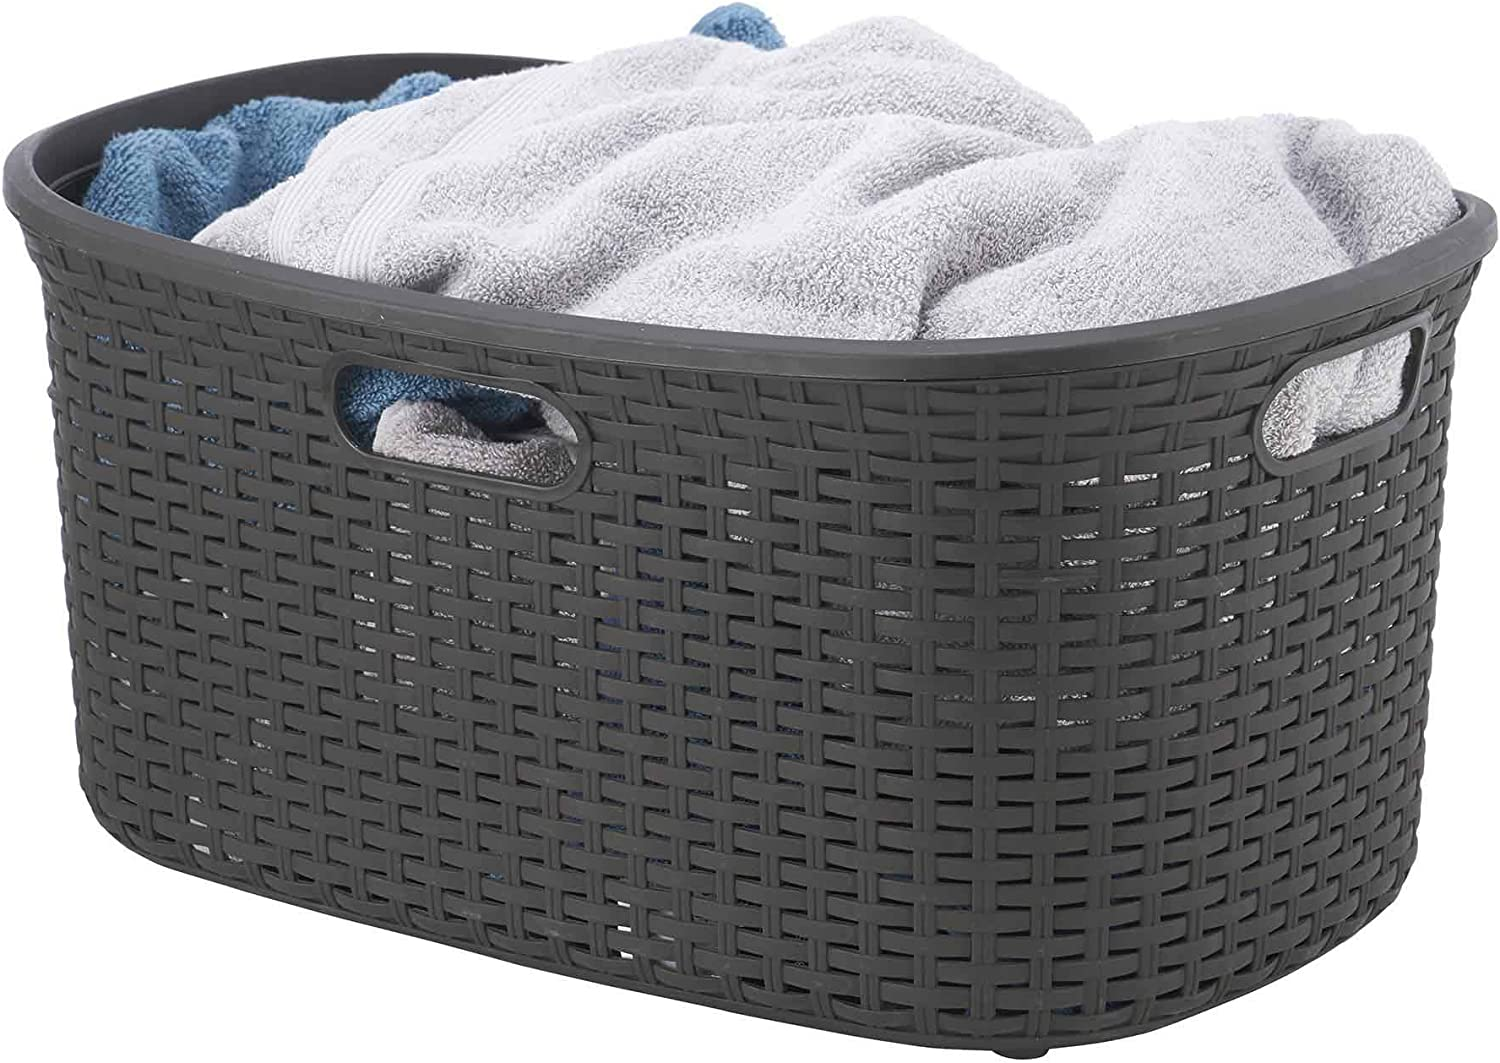 Wicker Laundry Basket Plastic With Cutout Handles 50 Liter, Brown Curved Bin To Keep Dirty Cloths 1.40 Bushel. By Superio